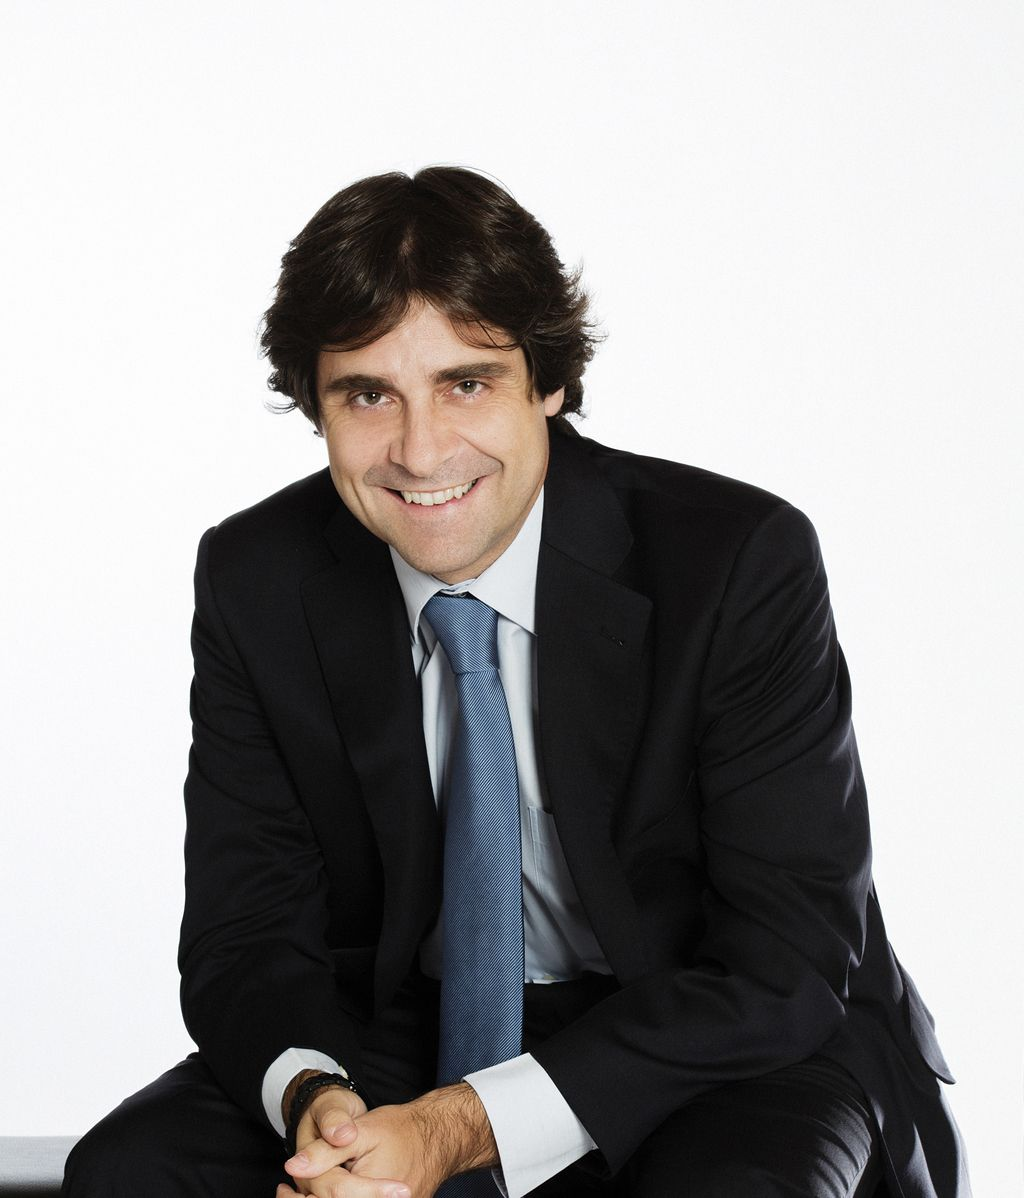 Javier López Cuenllas, director de Marketing de Mediaset España